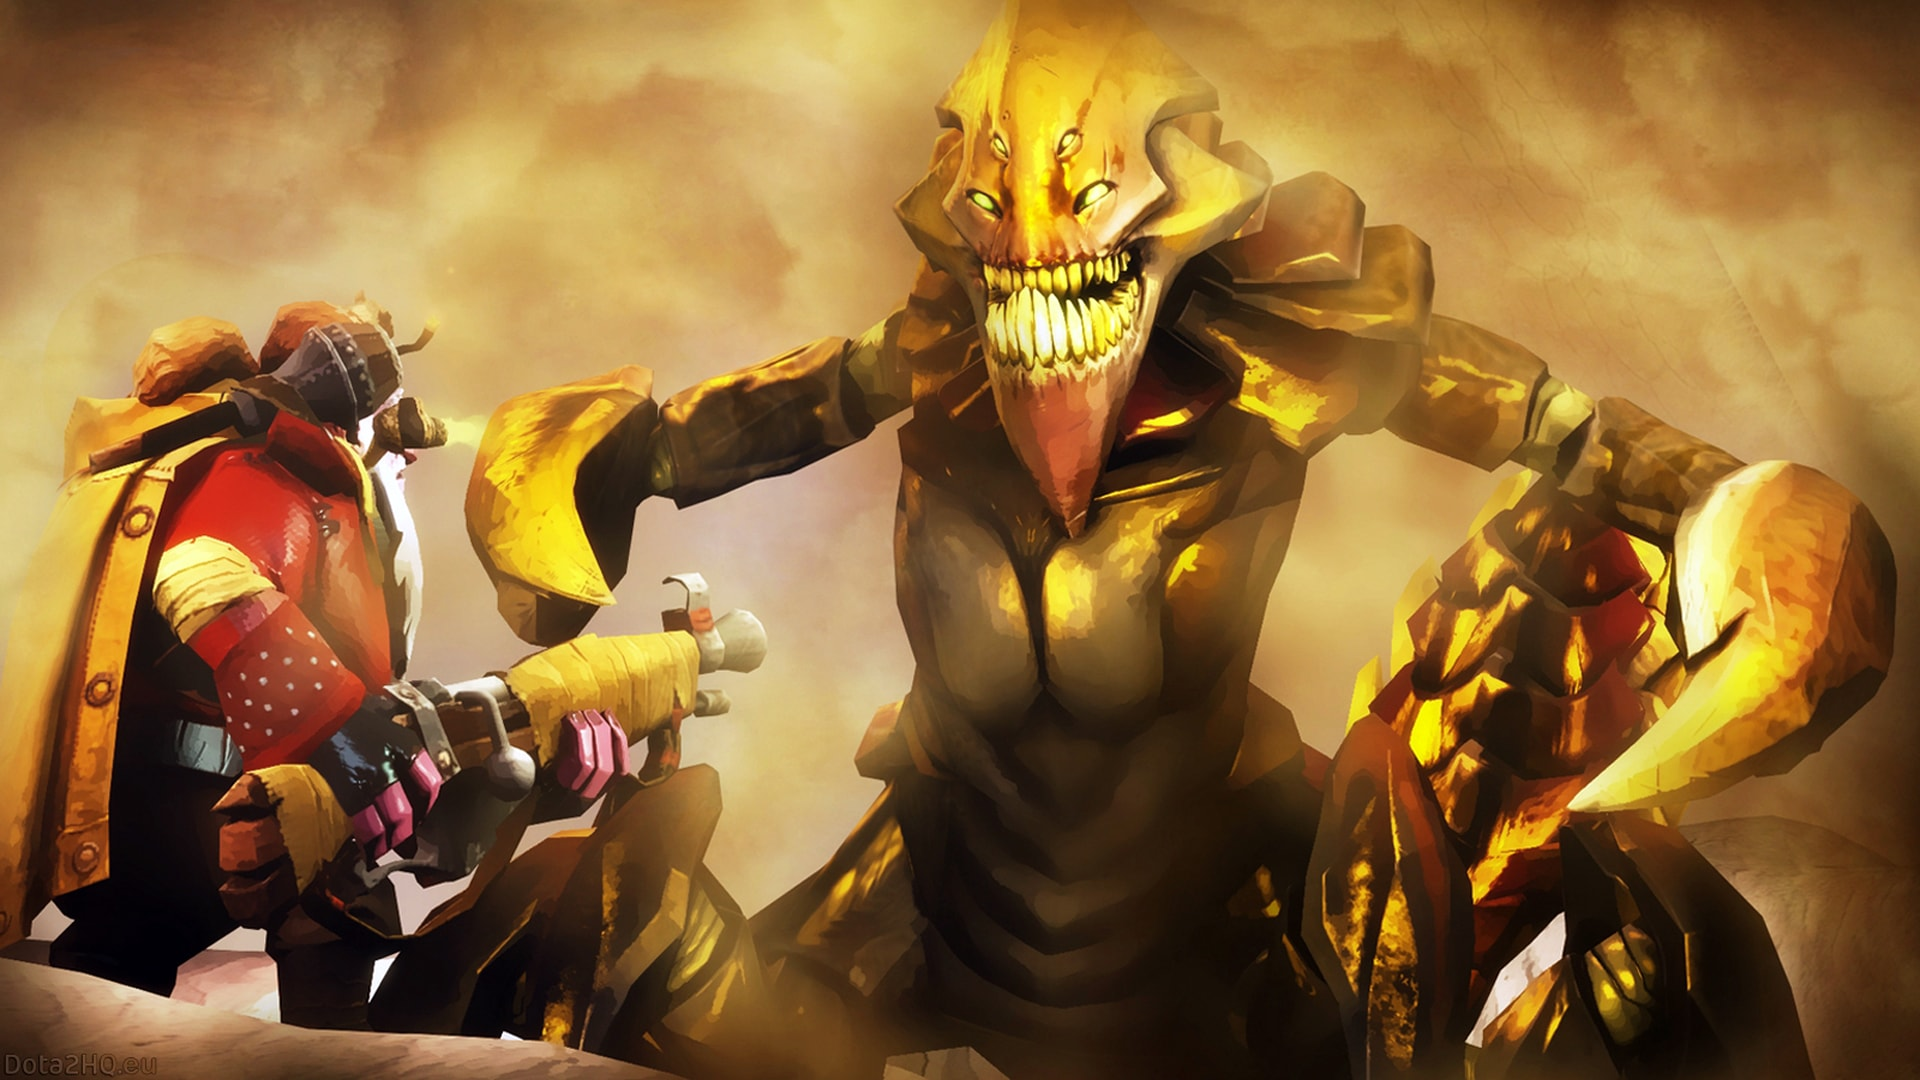 Dota2 : Sand King Wide wallpapers